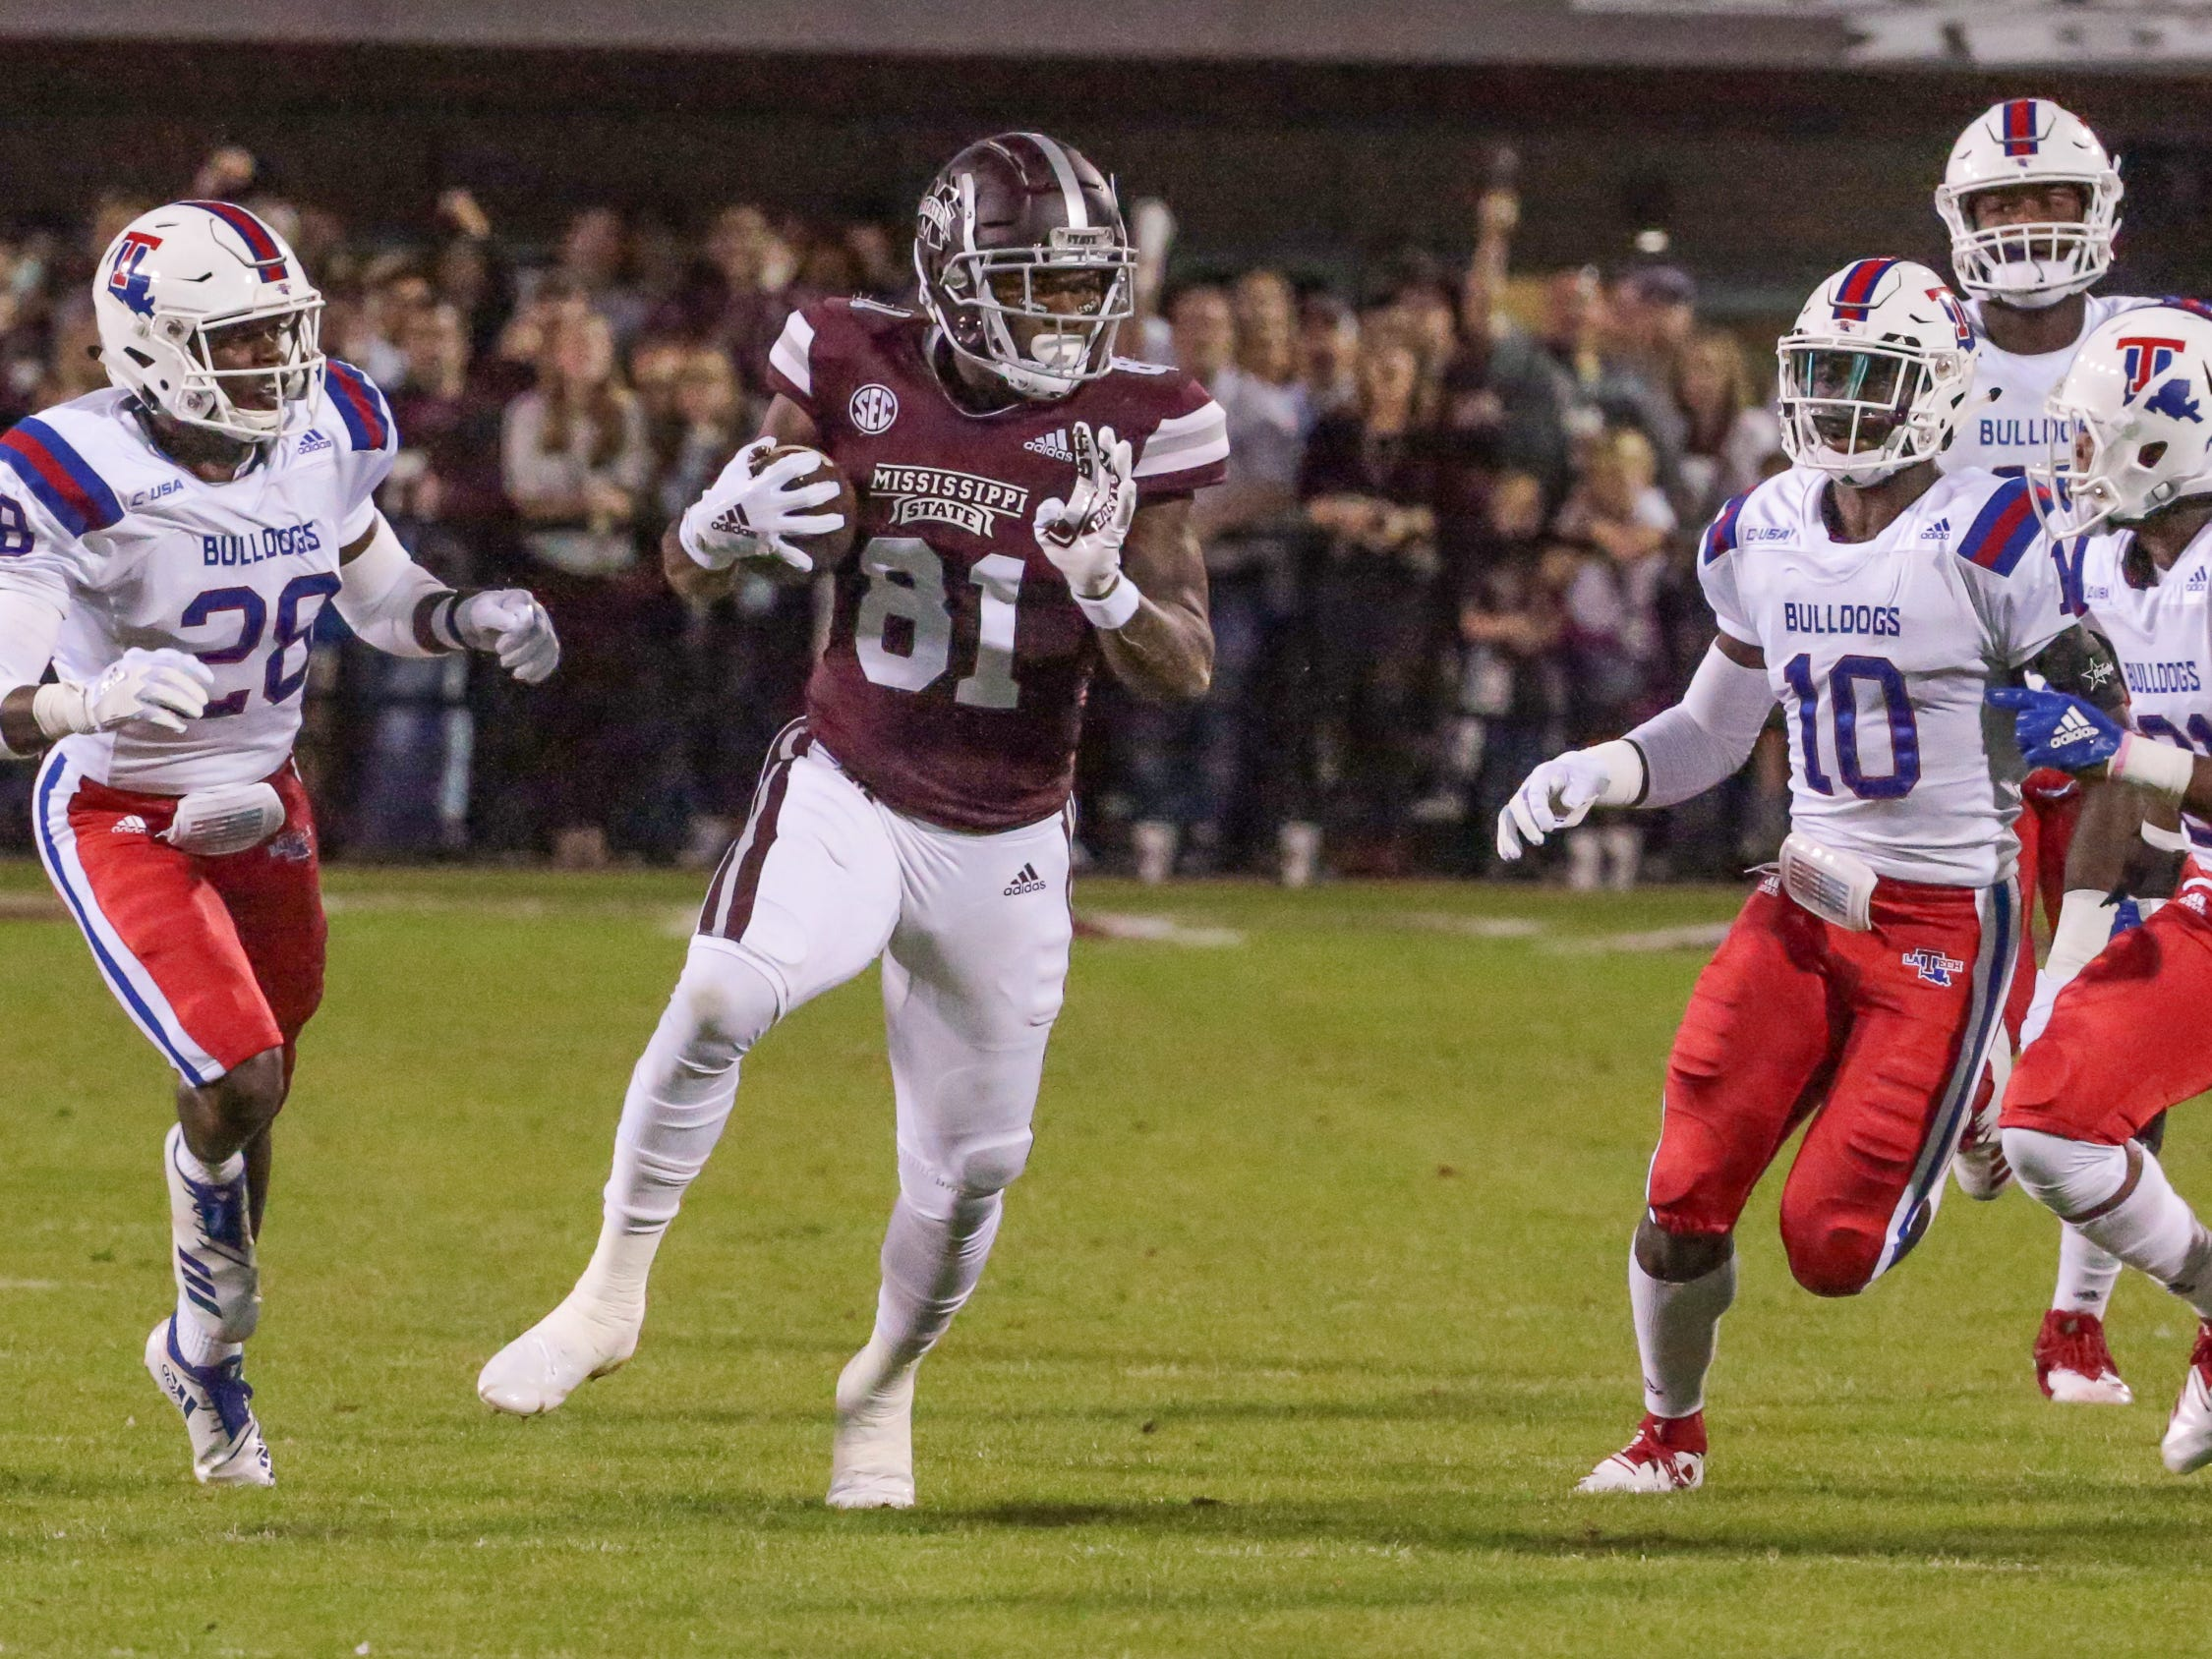 Mississippi State's Justin Johnson (81) picks up a big gain on the first possession of the game. Mississippi State and Louisiana Tech played in a college football game on Saturday, November 3, 2018, in Starkville. Photo by Keith Warren/Madatory Photo Credit